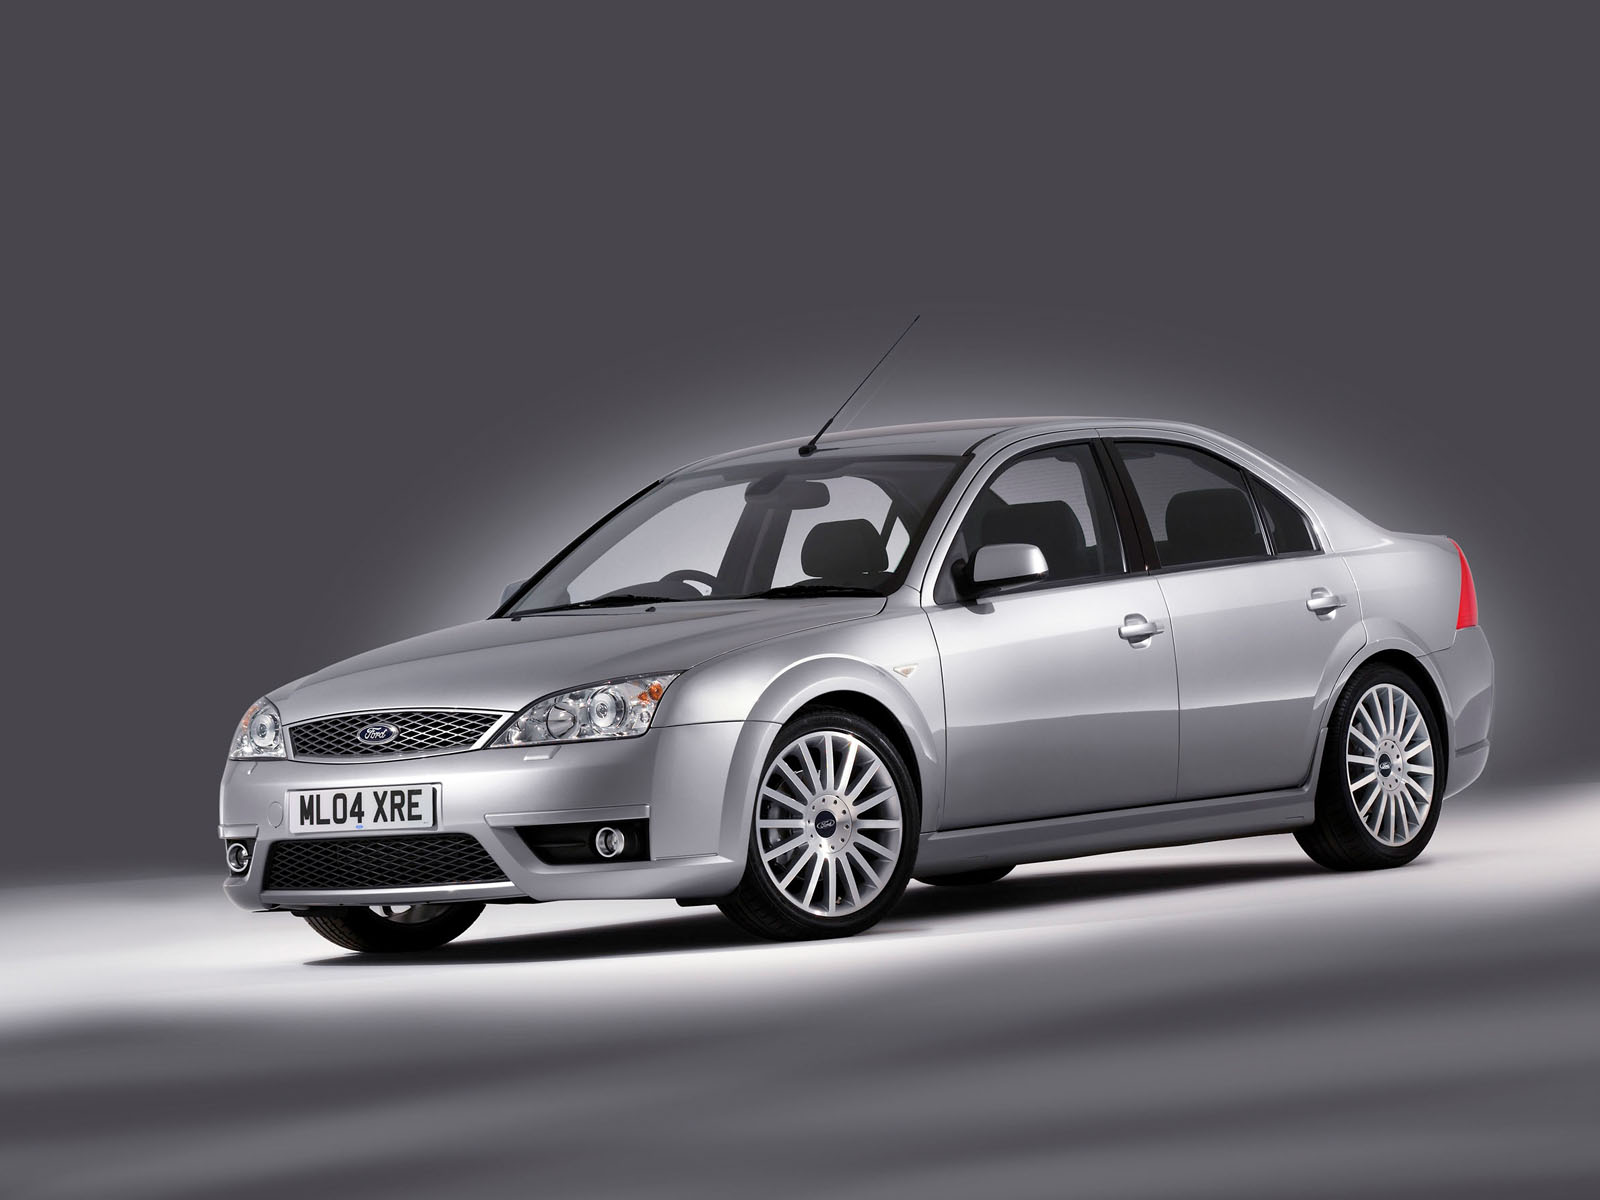 2005 ford mondeo 2 0 ghia pictures. Black Bedroom Furniture Sets. Home Design Ideas